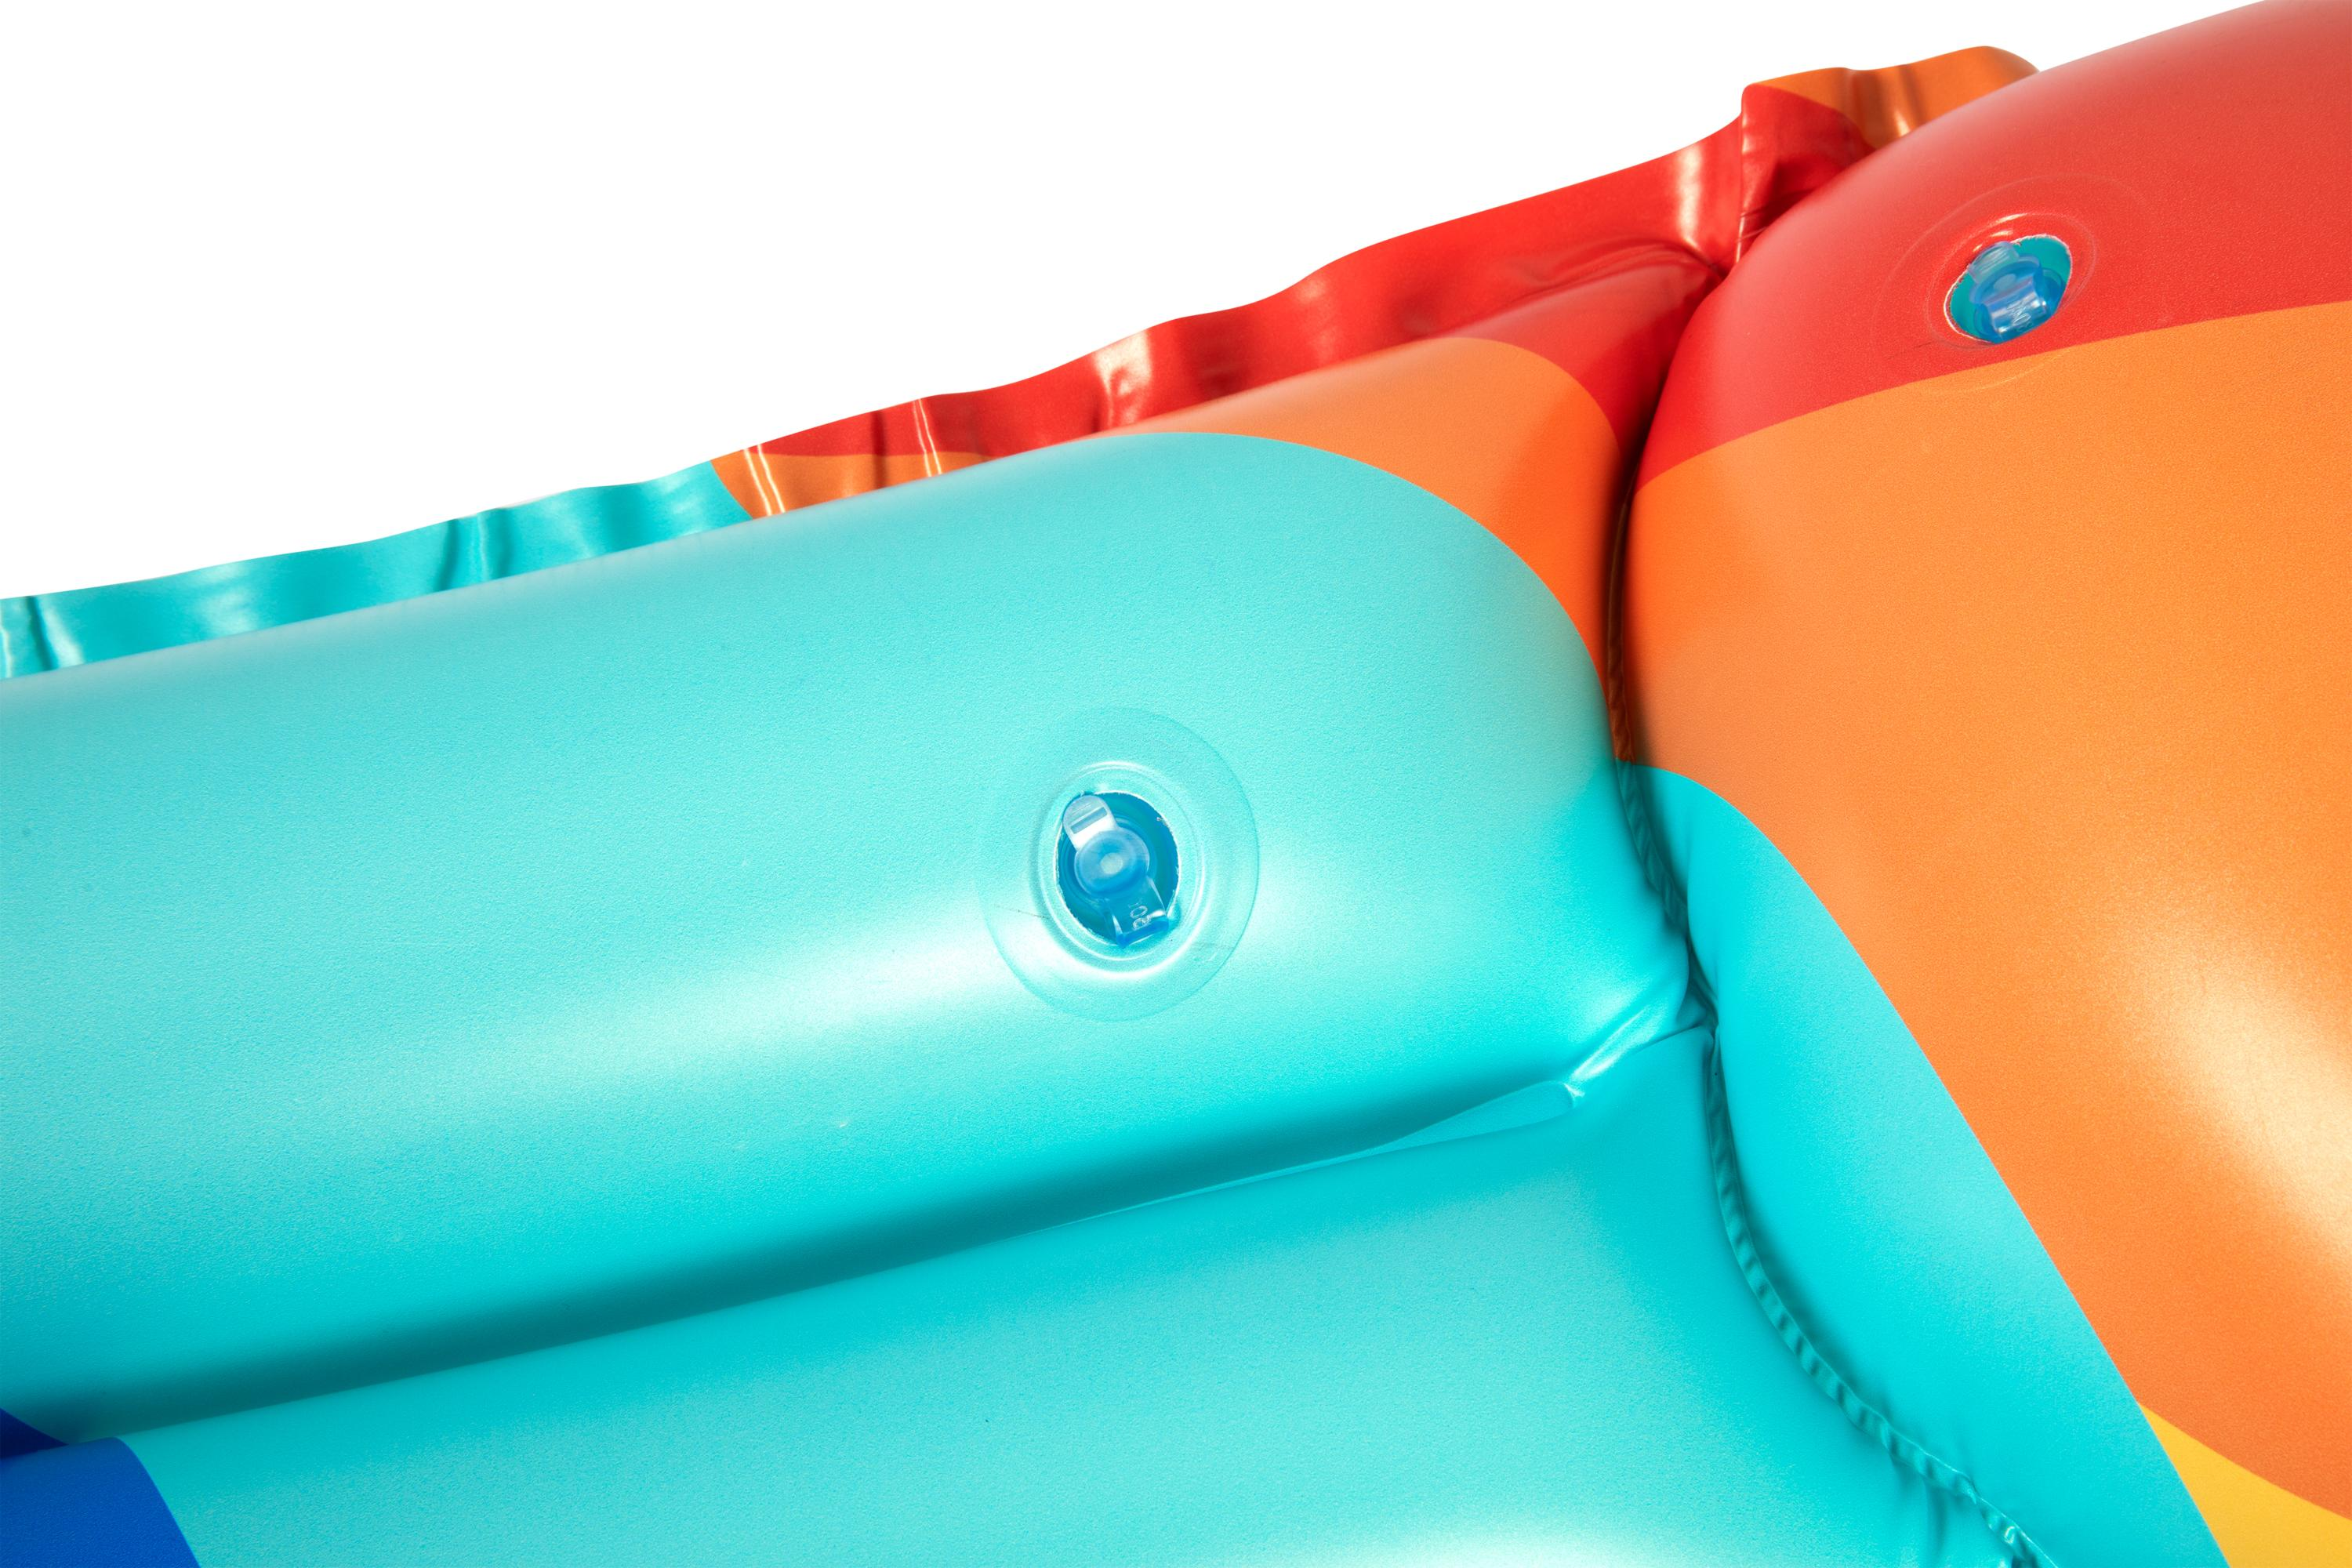 Bestway 44021 Inflatable Fashion floating Air Mat swimming pool floating mattress